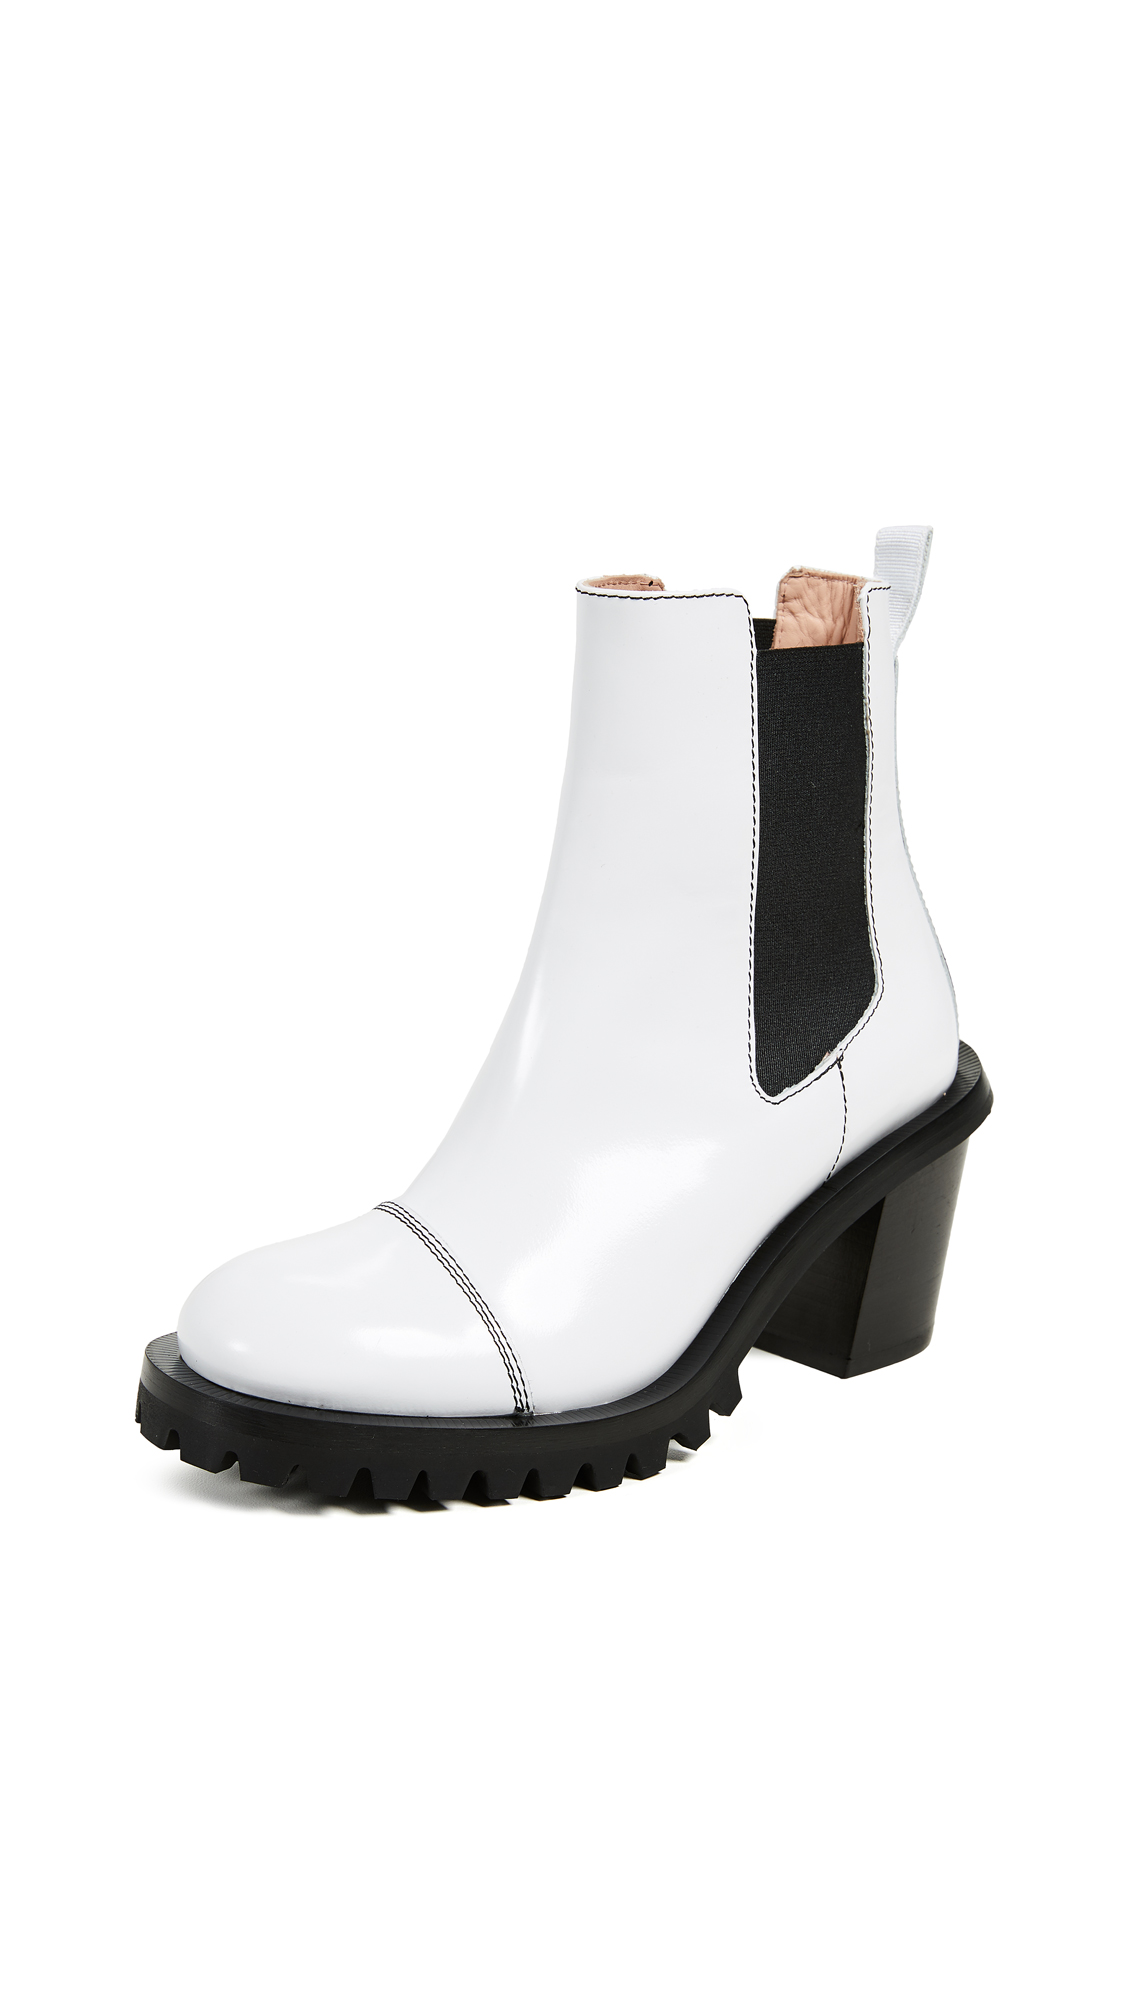 Photo of Acne Studios Chelsea Booties online shoes sales